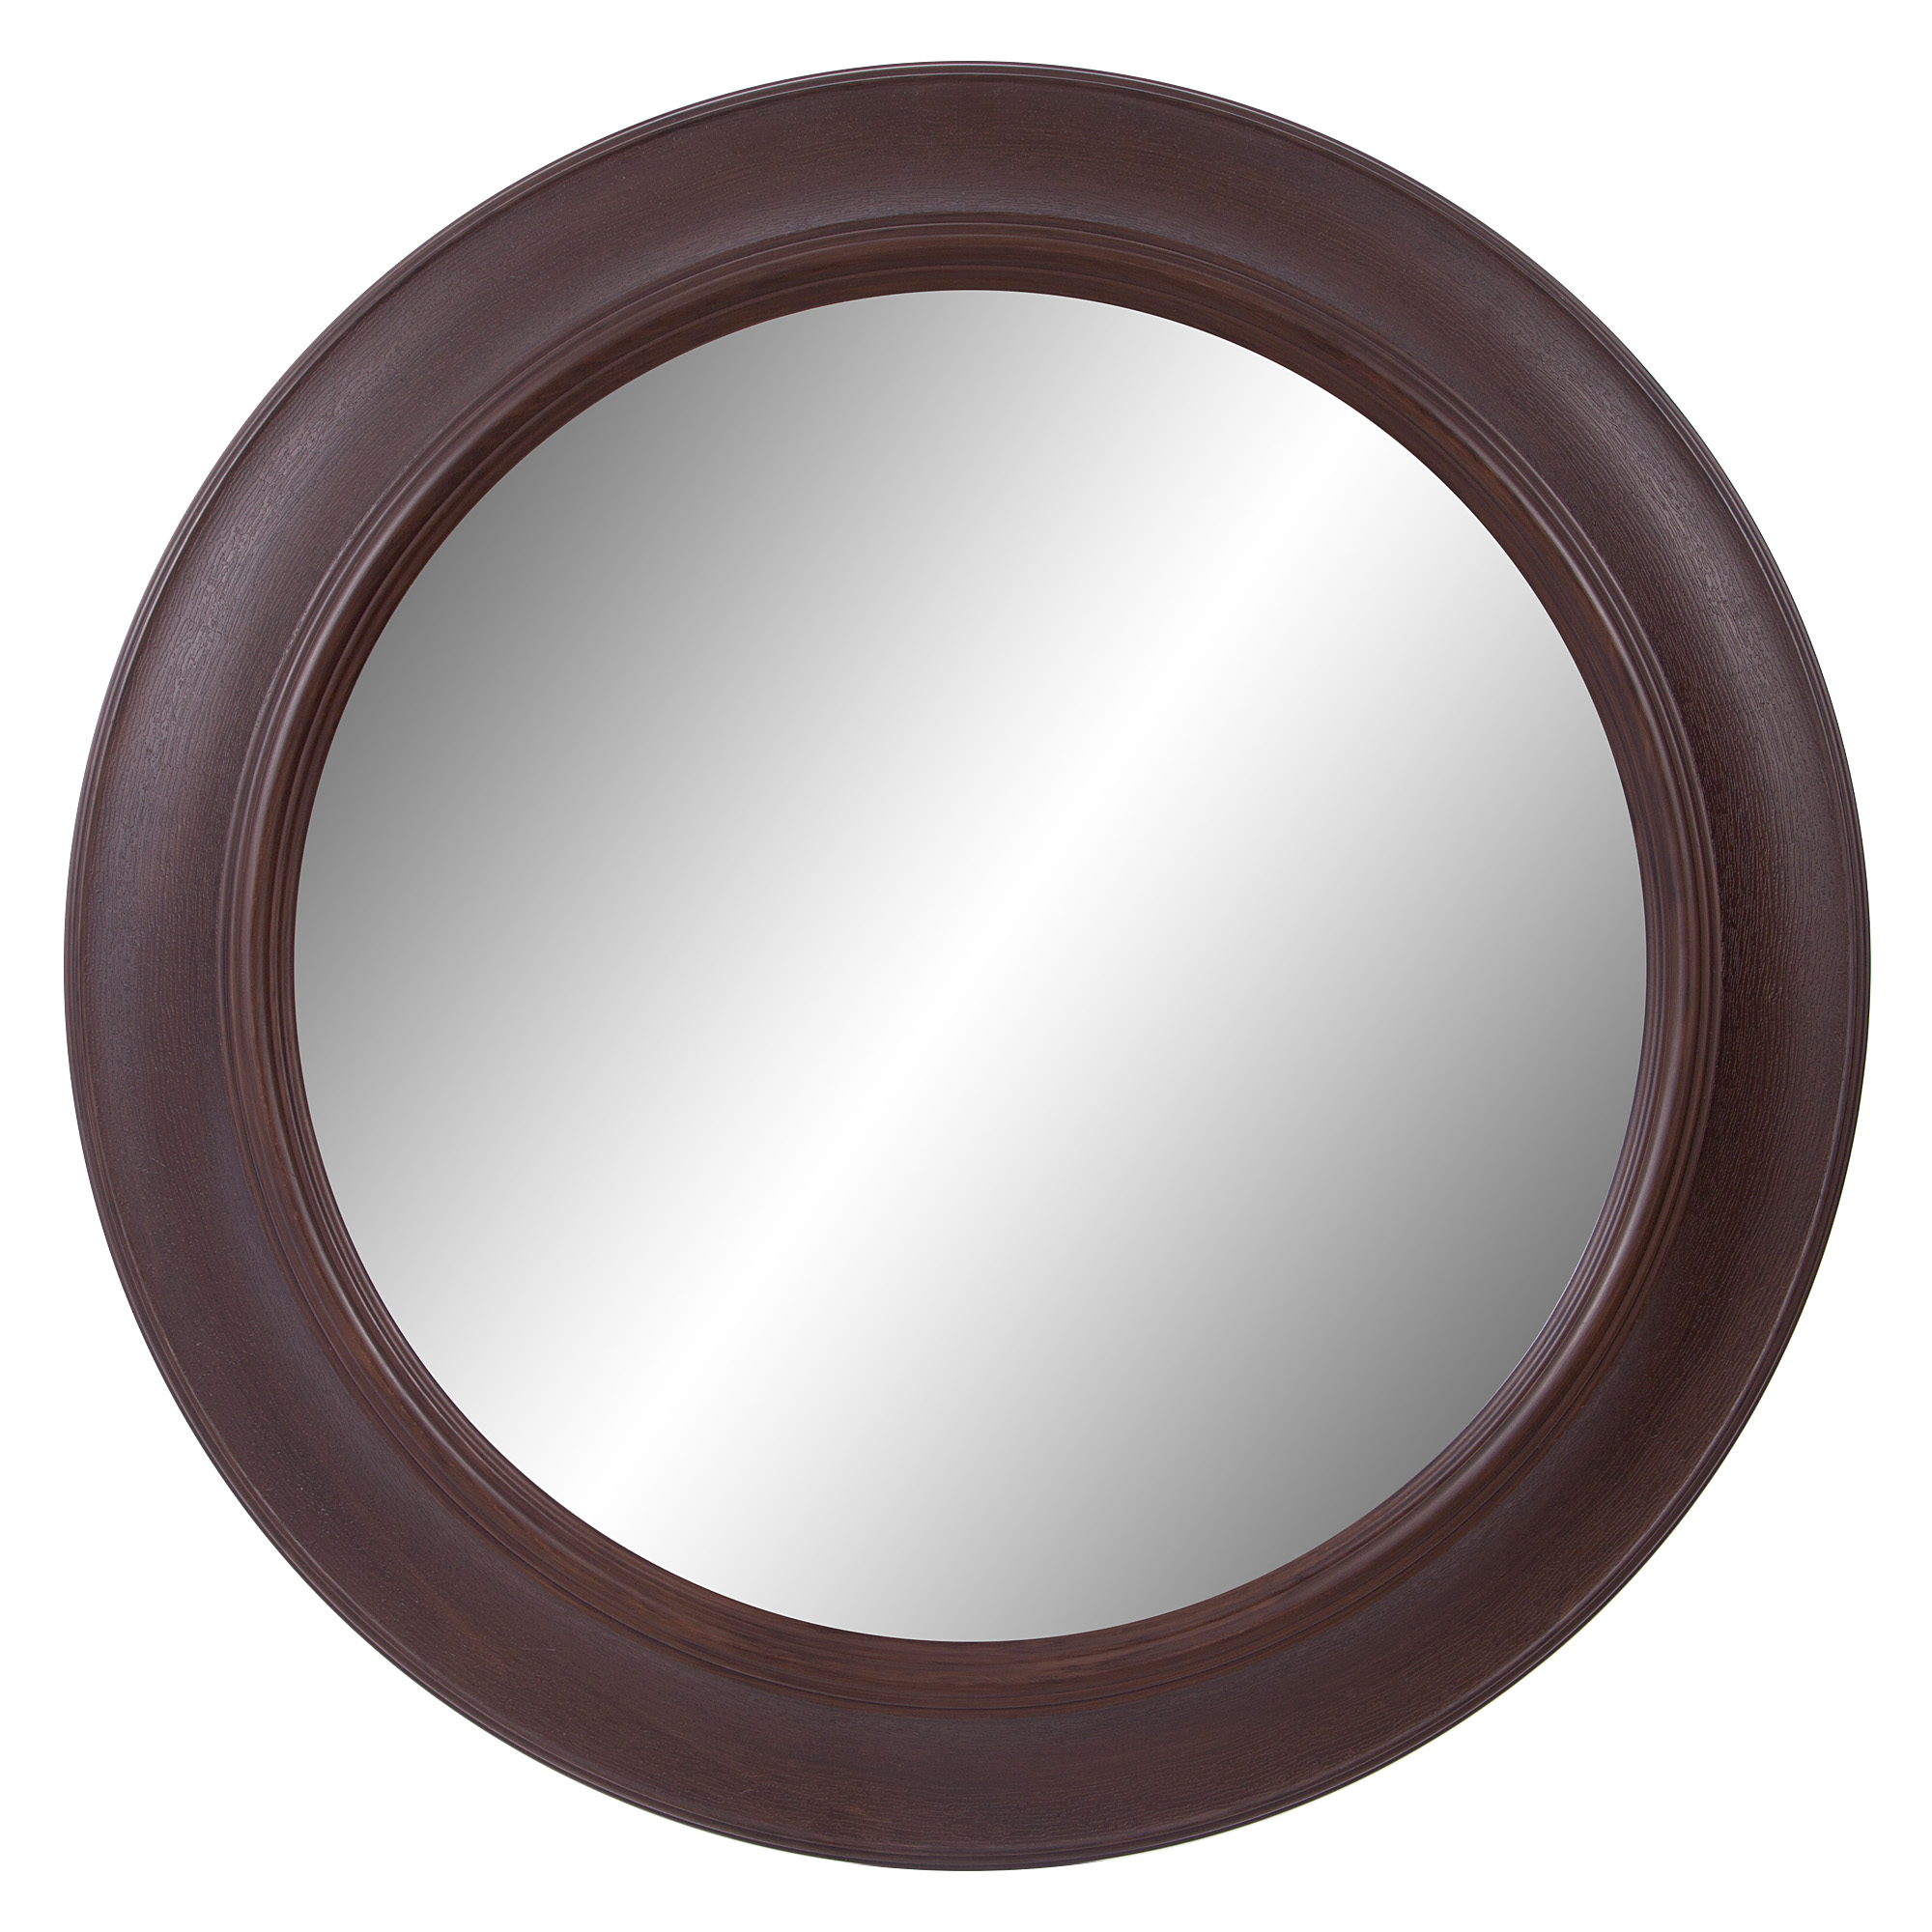 Patton Wall Decor 30 Inch Bronze Woodgrain Round Mirror by Patton Wall Decor